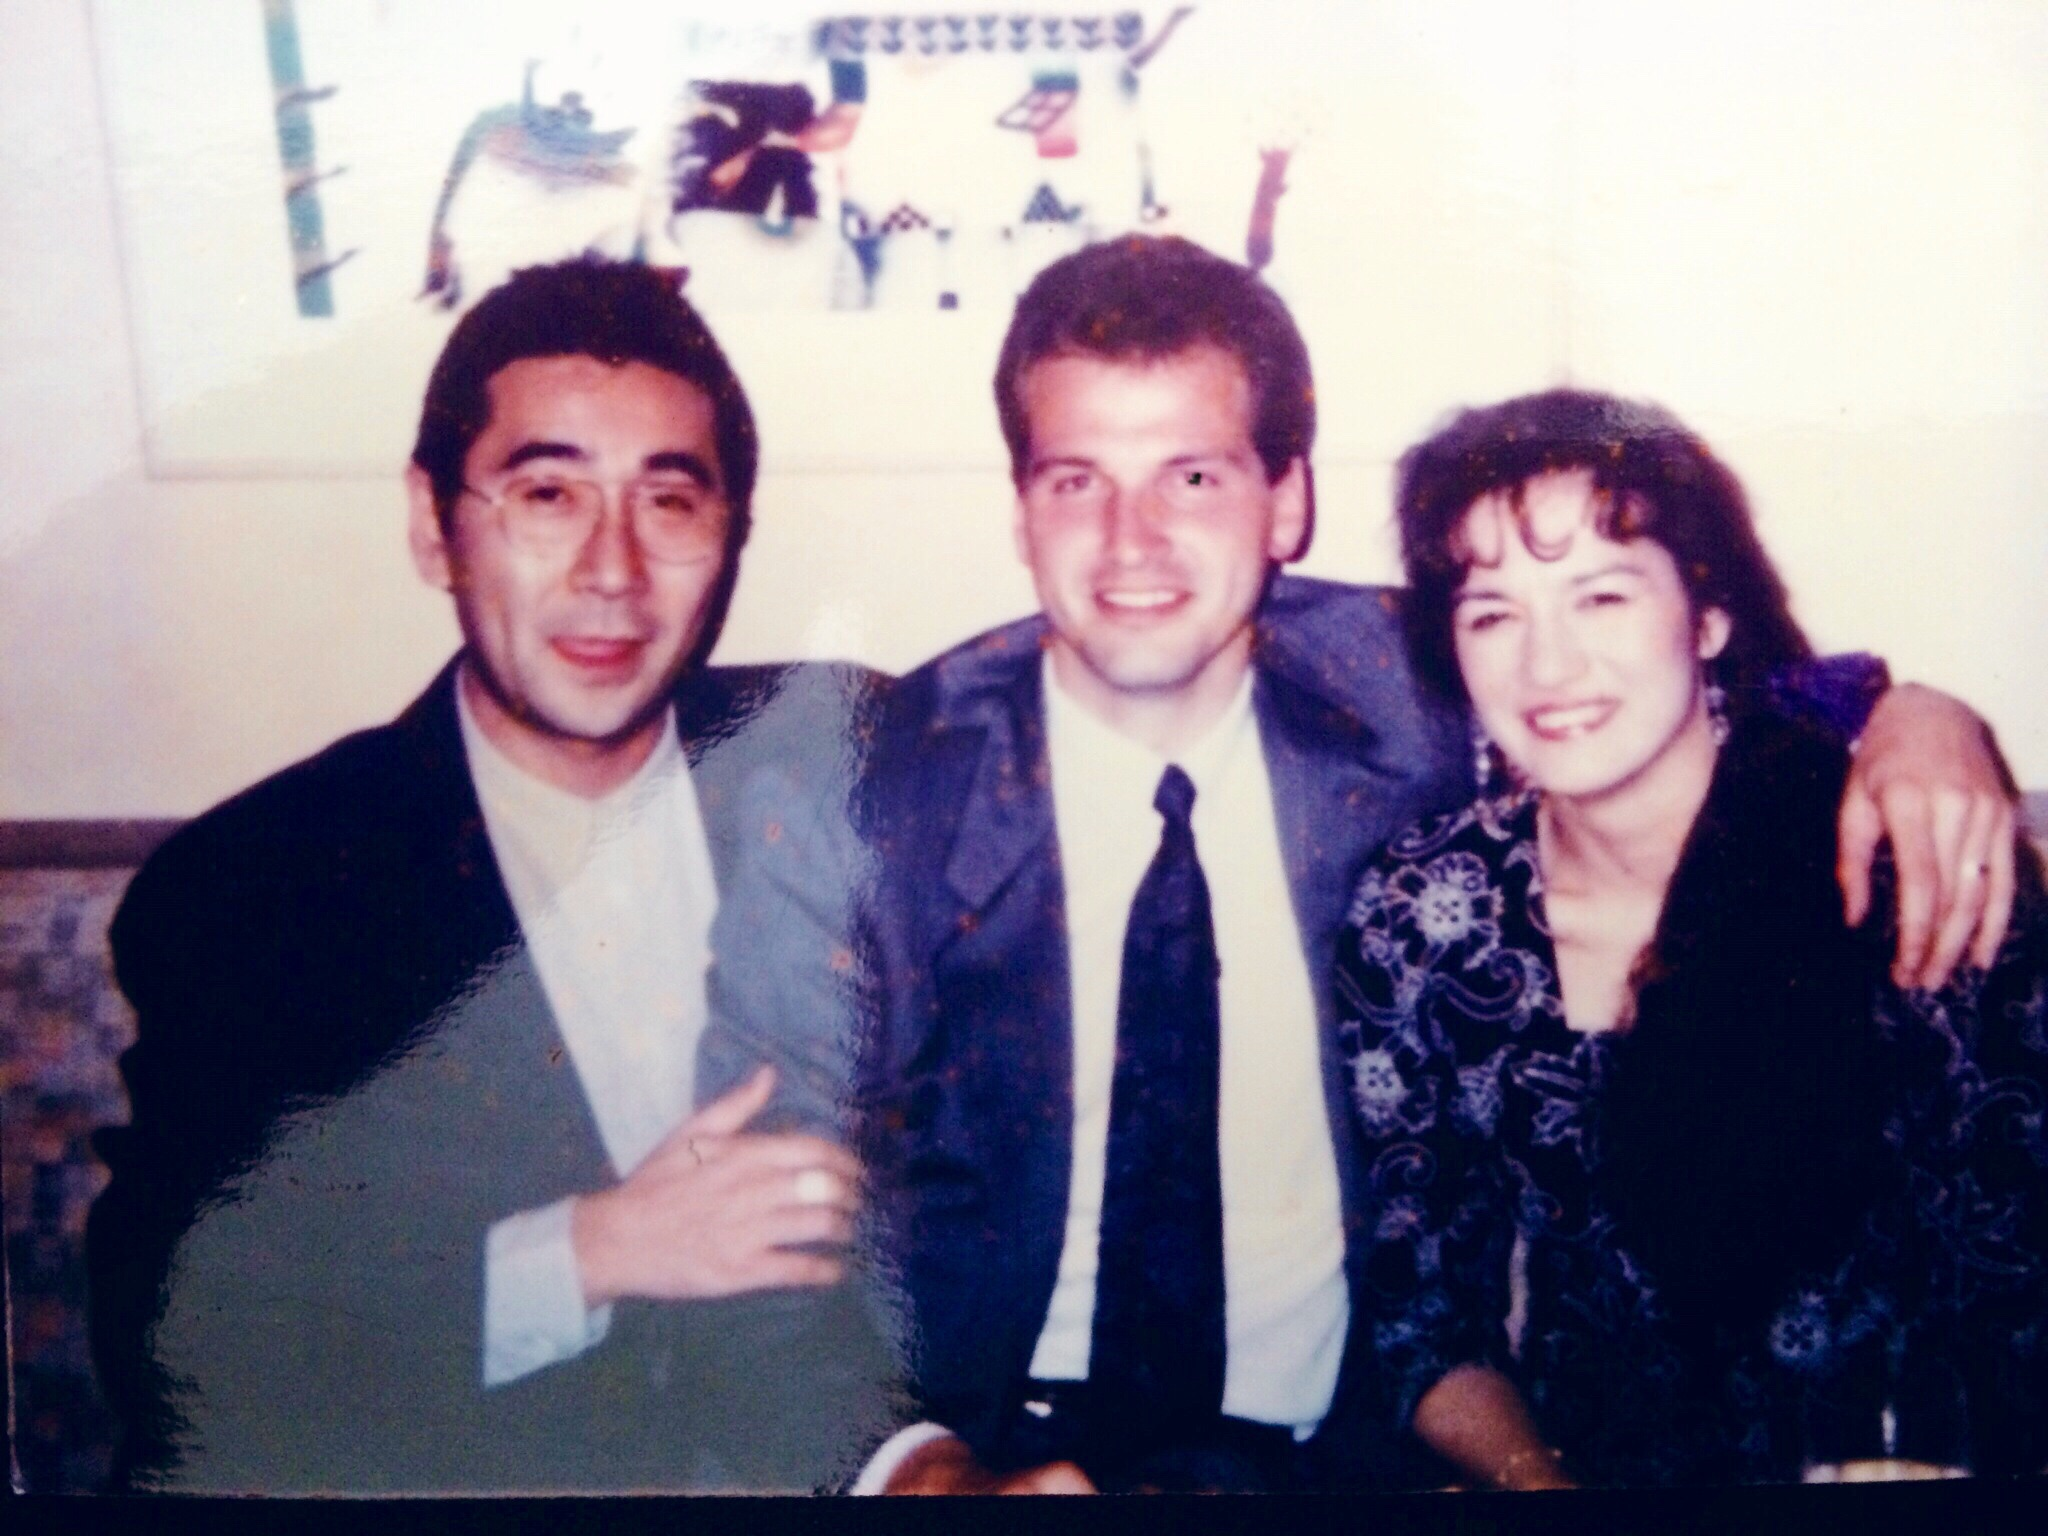 From left: My friend Ono-san, myself, and my wife in Ono-san's restaurant in Roppongii. Circa: 1992.